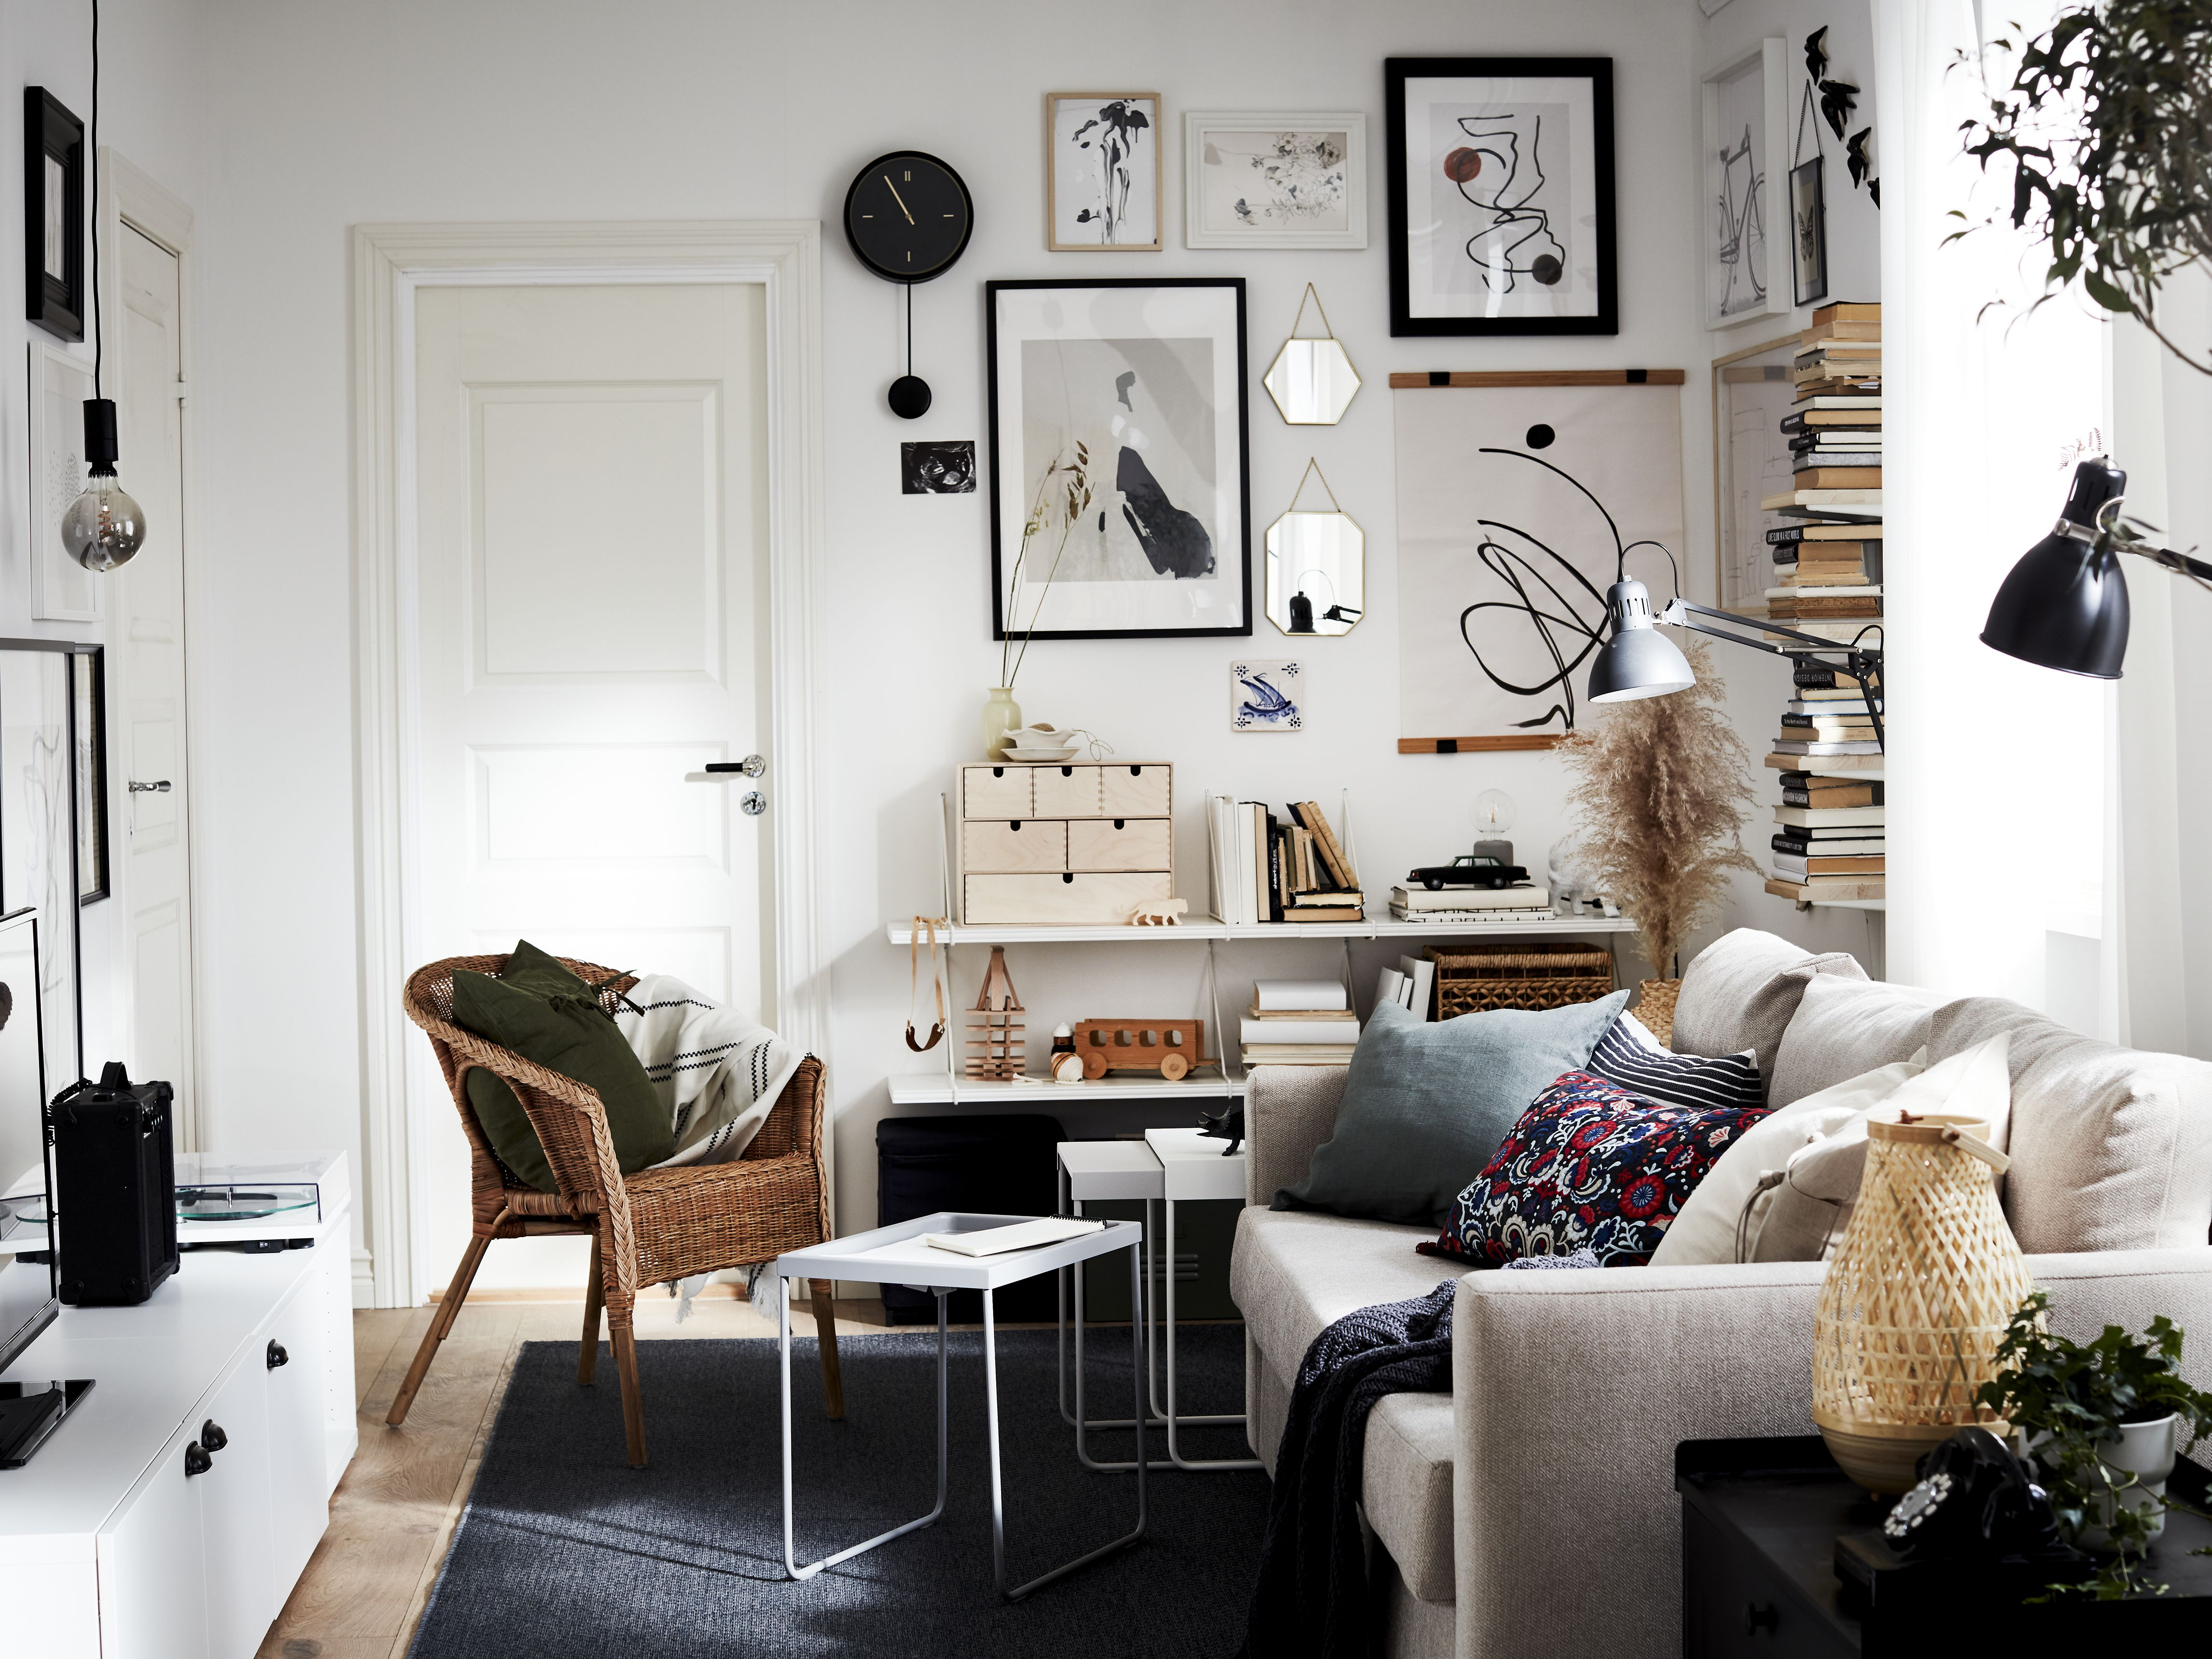 The 20 IKEA Catalog Is Here—These Are the 20 Best Trends We Saw